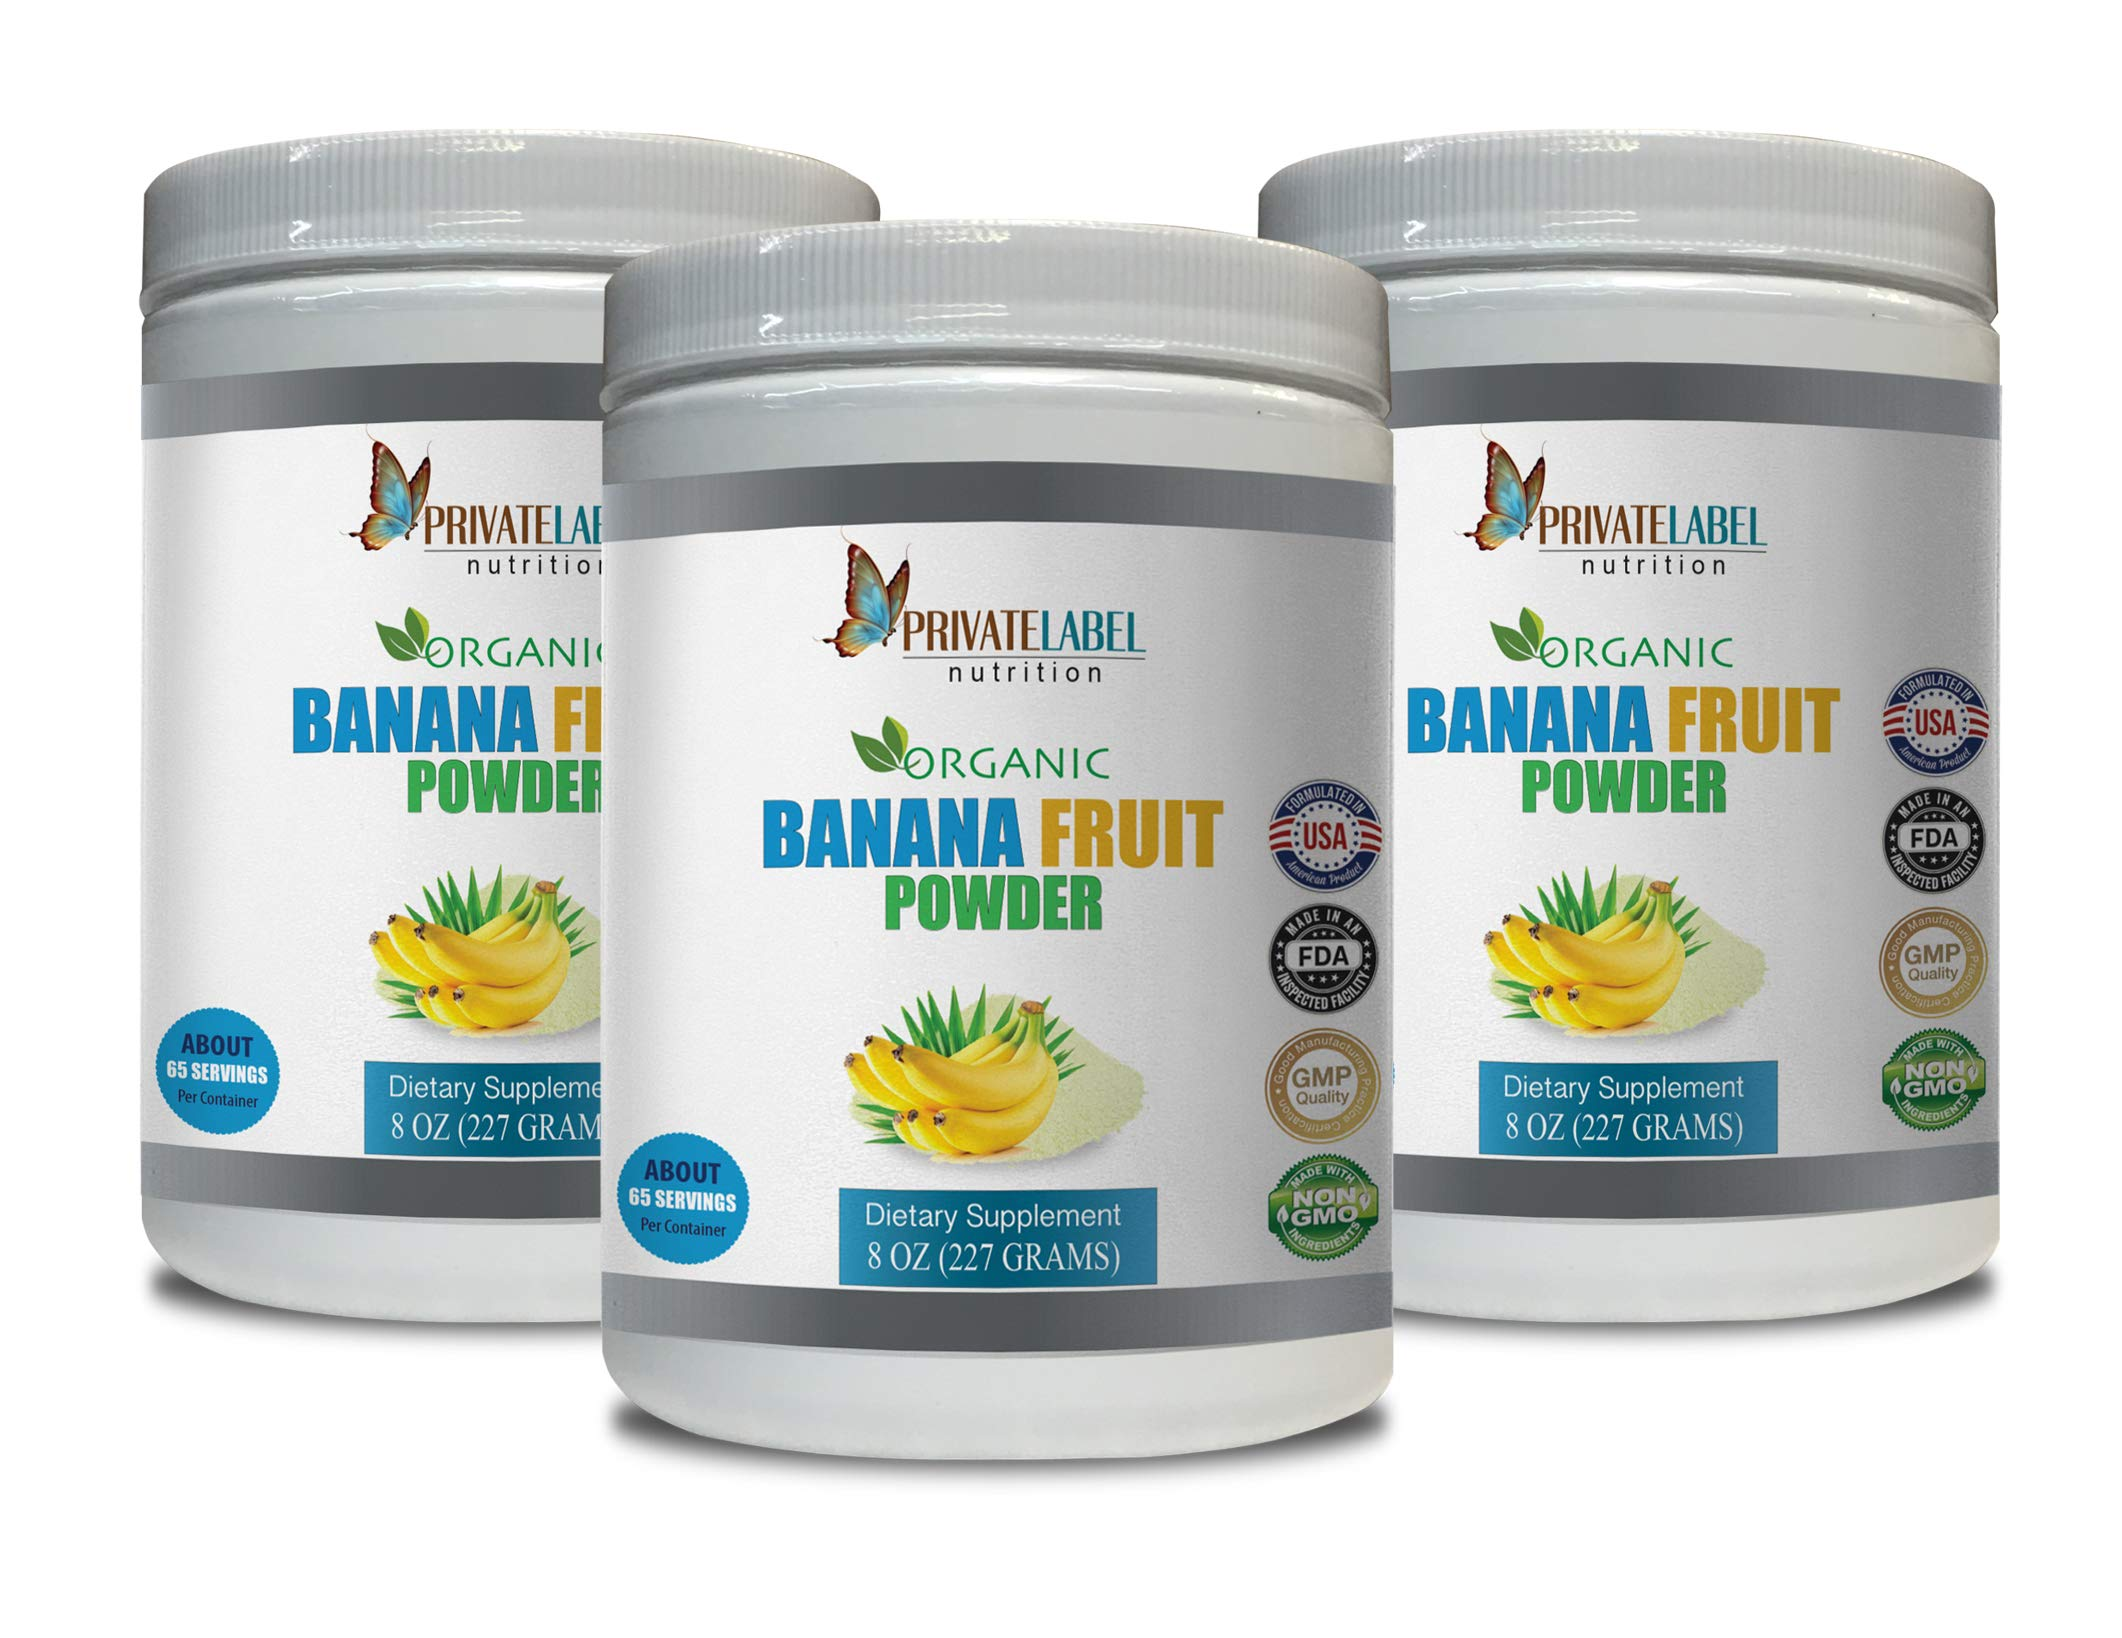 antioxidant Complex Dietary Supplement - Banana Fruit Organic Powder - Digestive Support - 3 Cans 24 OZ (195 Servings)